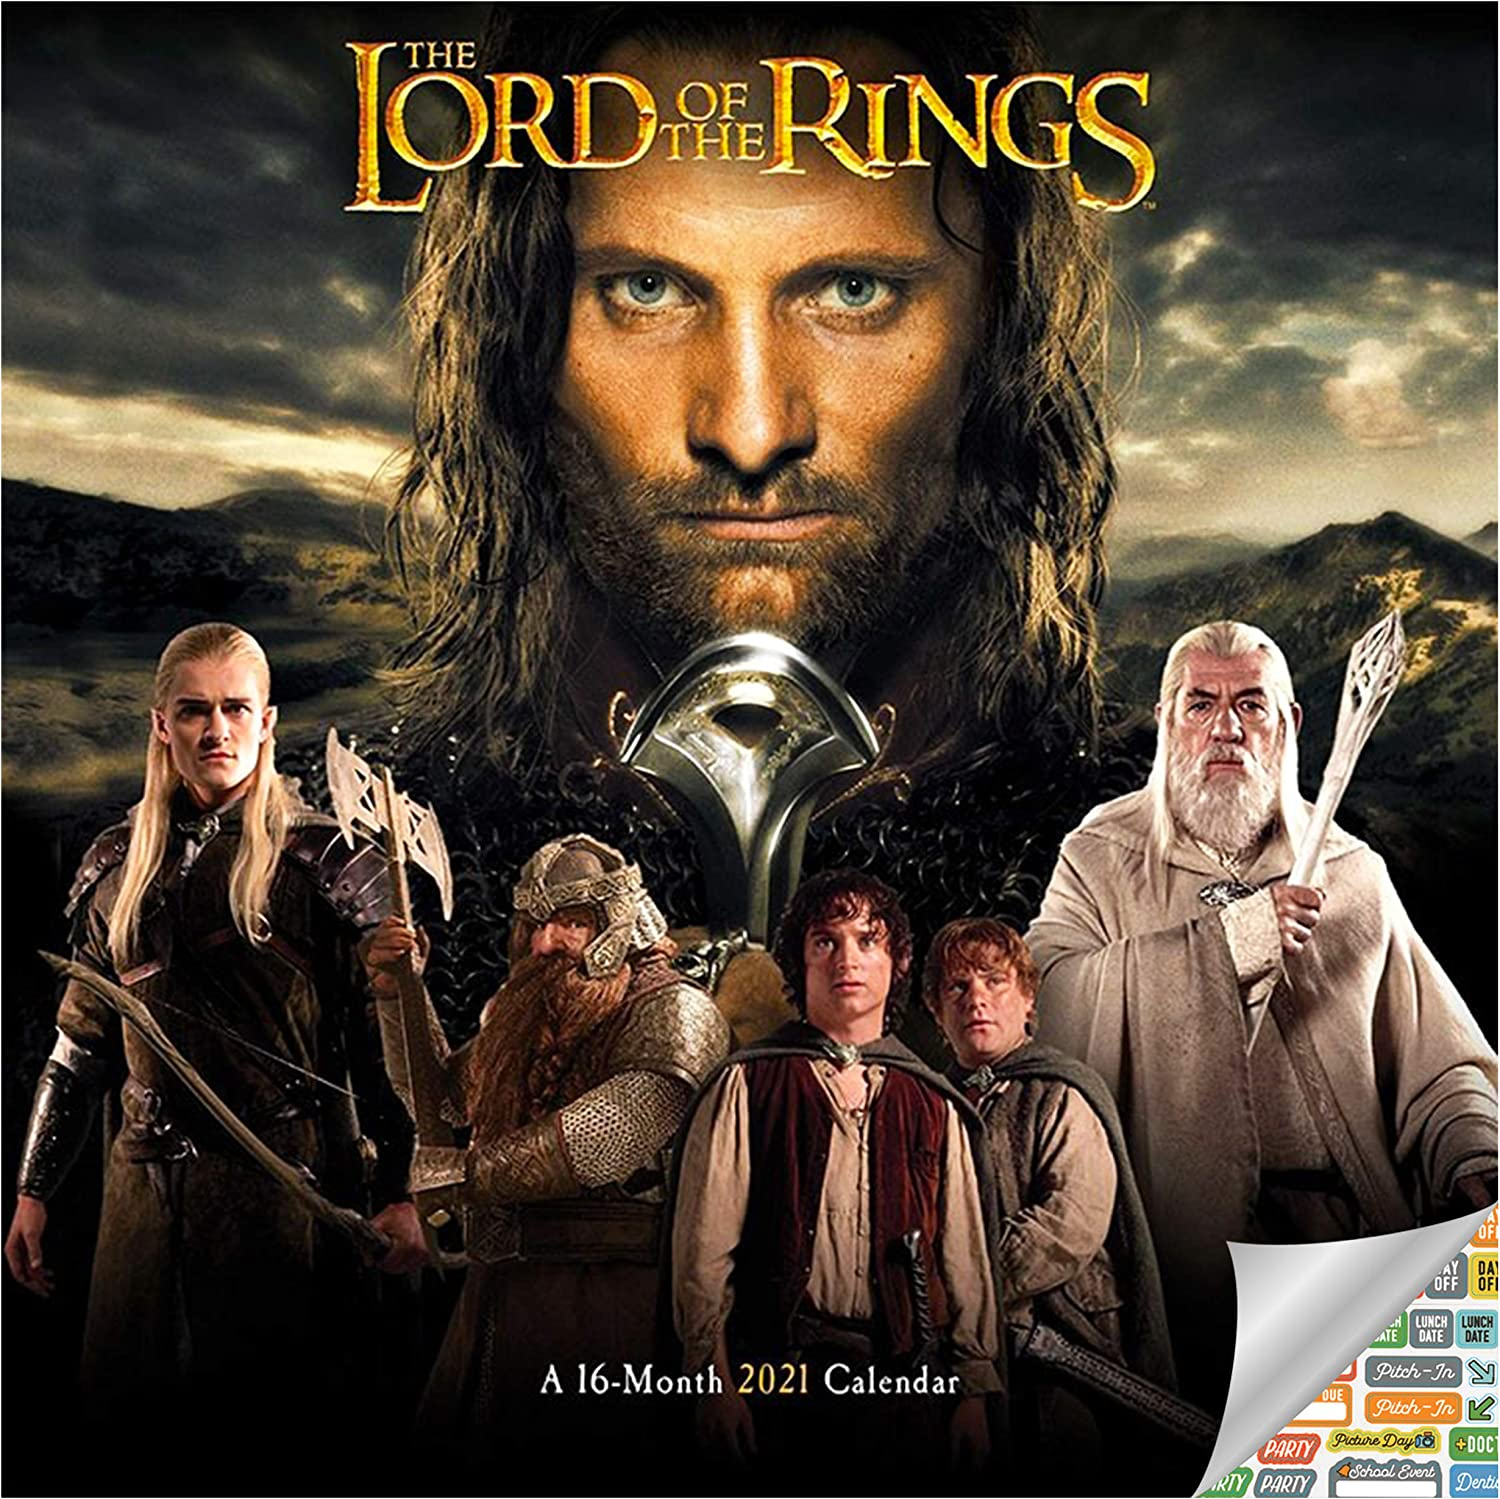 The Lord of The Rings Calendar 2021 Bundle - Deluxe 2021 The Lord of The Rings Wall Calendar with Over 100 Calendar Stickers (LOTR Gifts, Office Supplies)